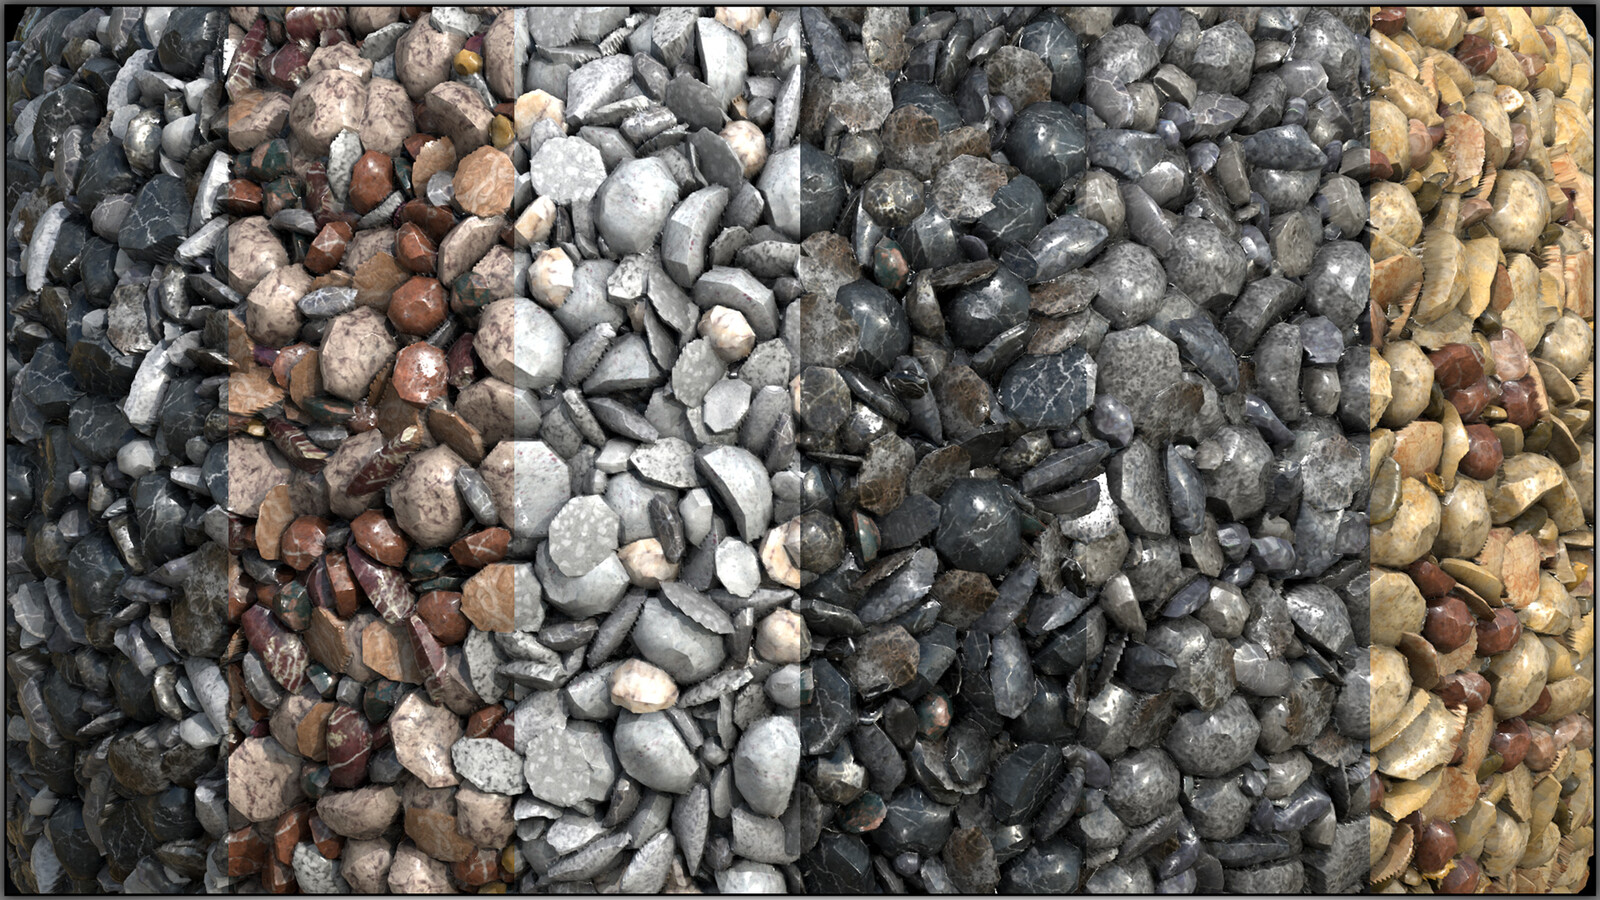 A sampling of all of the gravel colors.